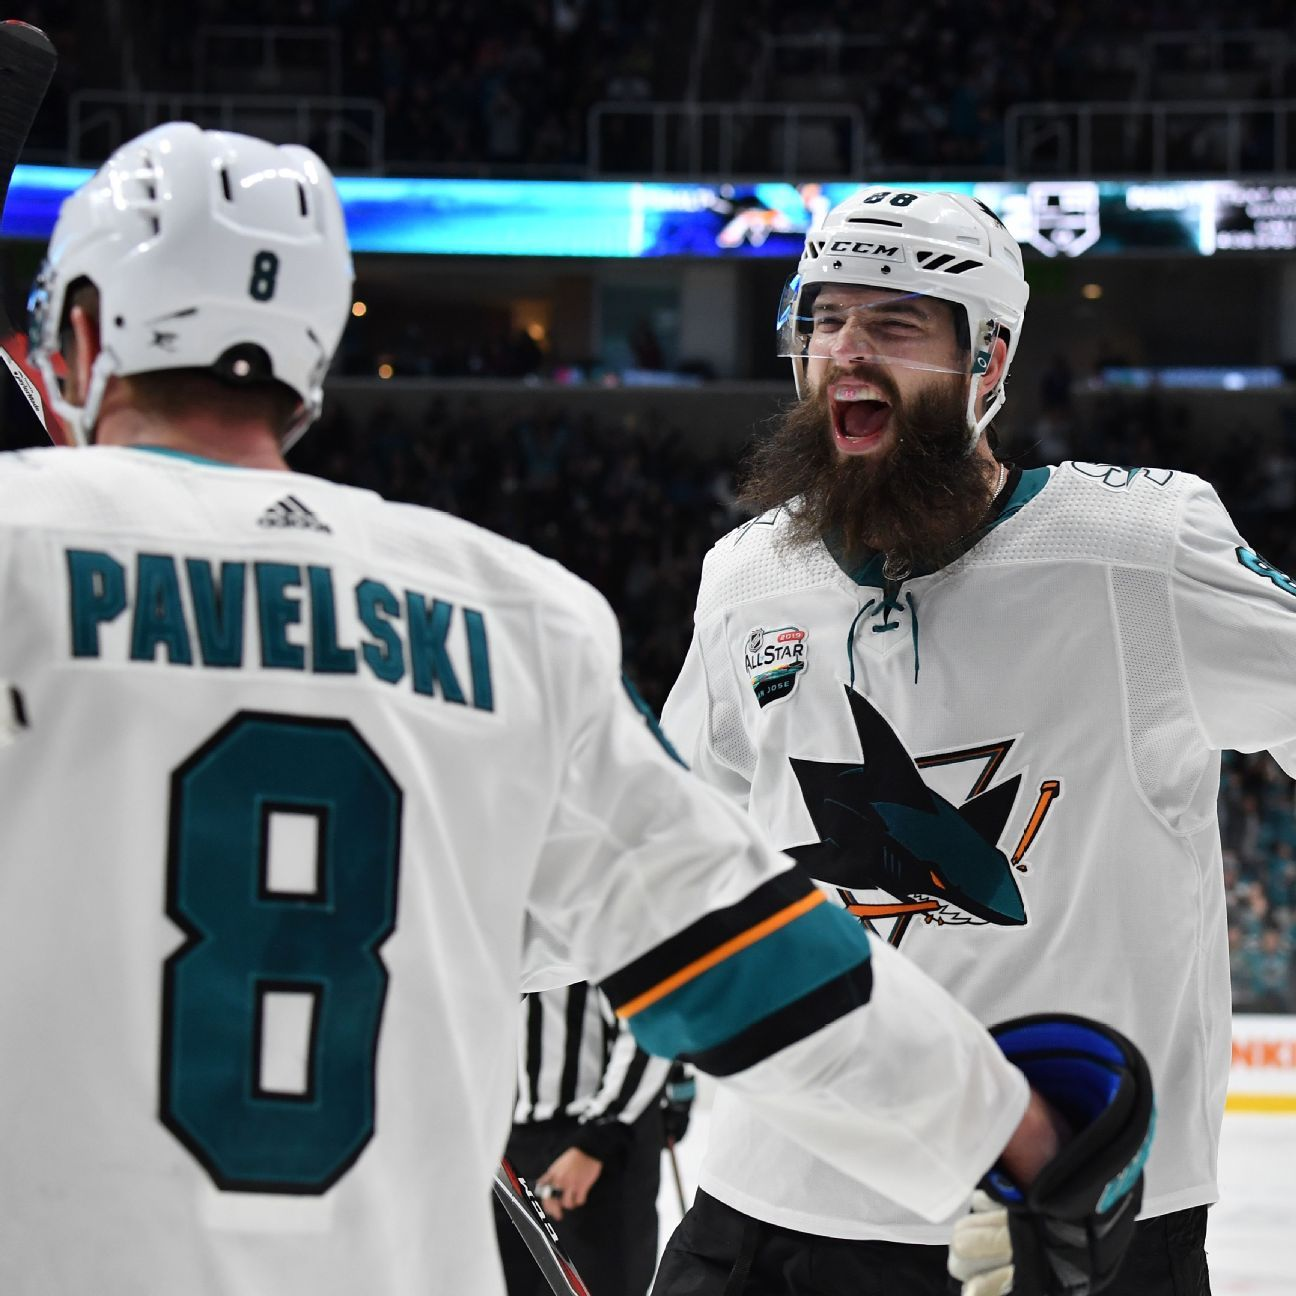 super popular ca6df 220a7 Joe Pavelski, Brent Burns, Erik Karlsson to represent host ...